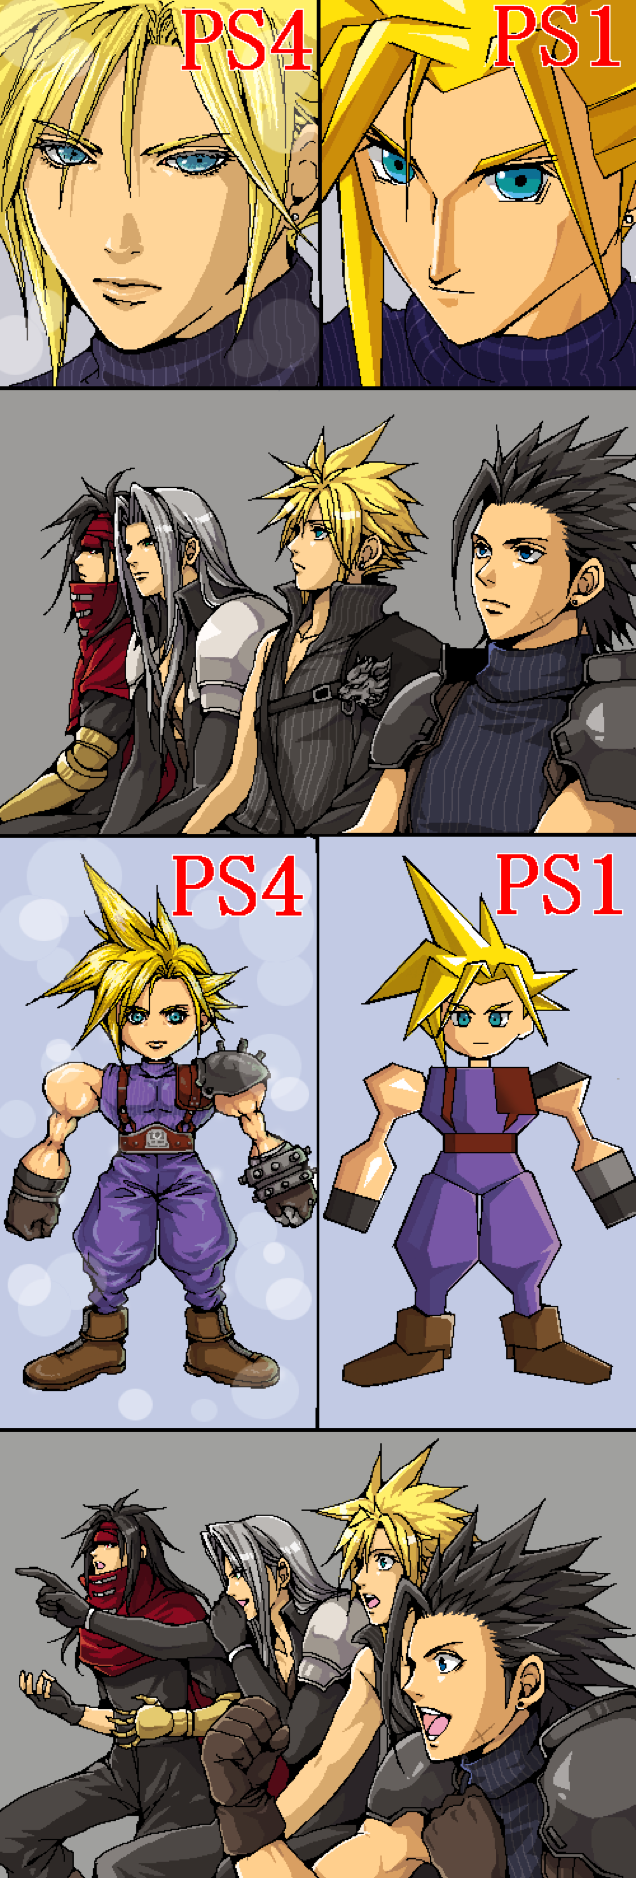 The Internet Reacts to the Final Fantasy VII Remake